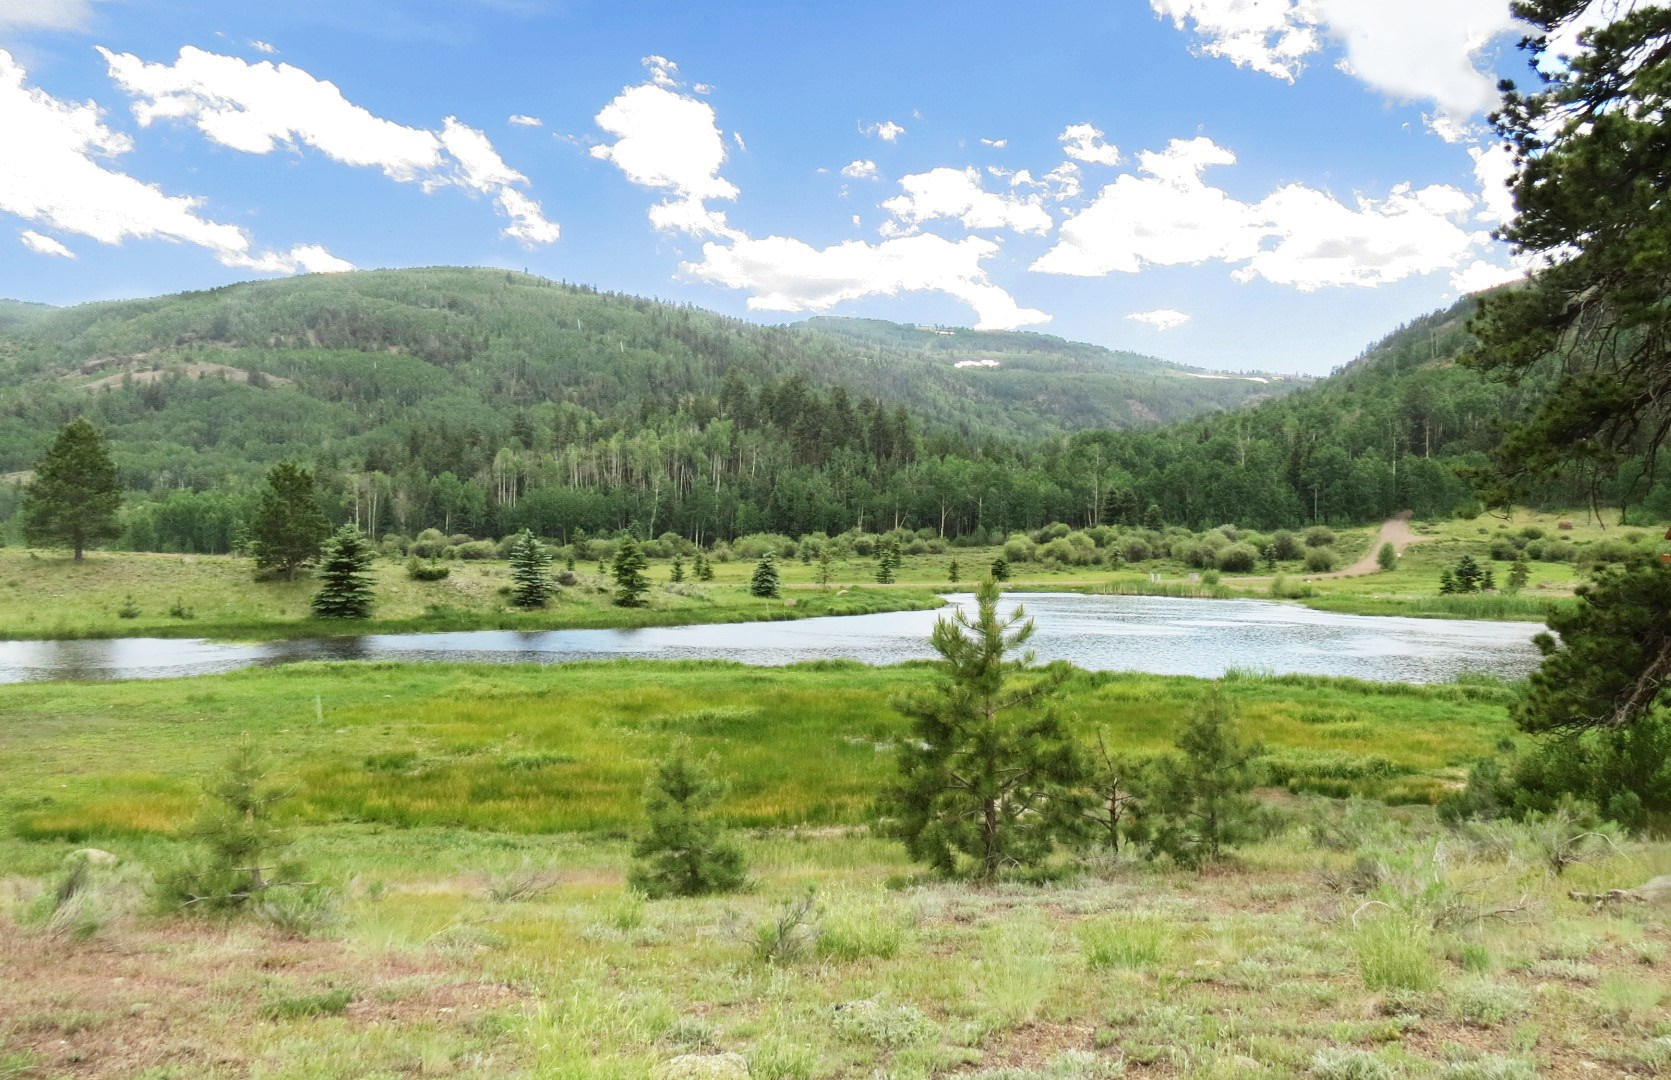 Mtn Land For Sale in Colorado, Gated Community, Fly Fishing